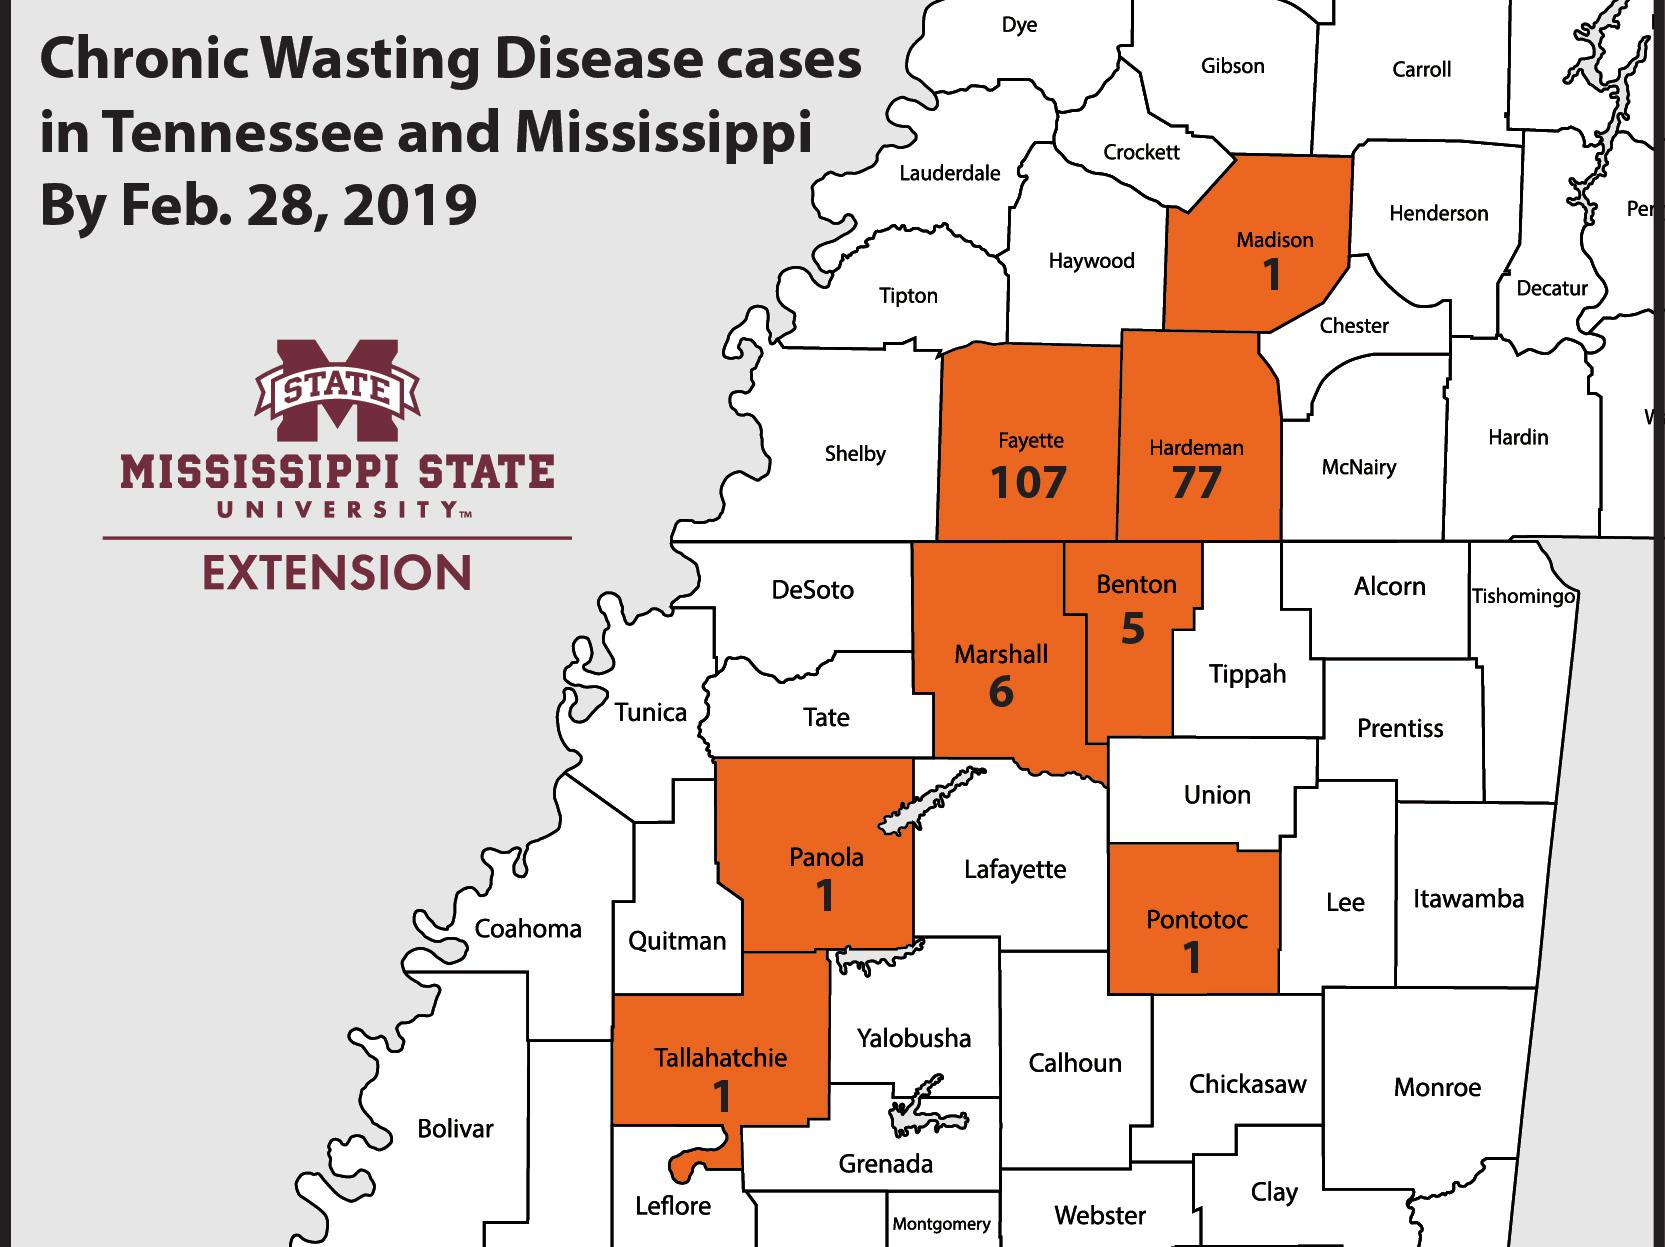 Regional map of Mississippi and Tennessee counties with cases of chronic wasting disease.